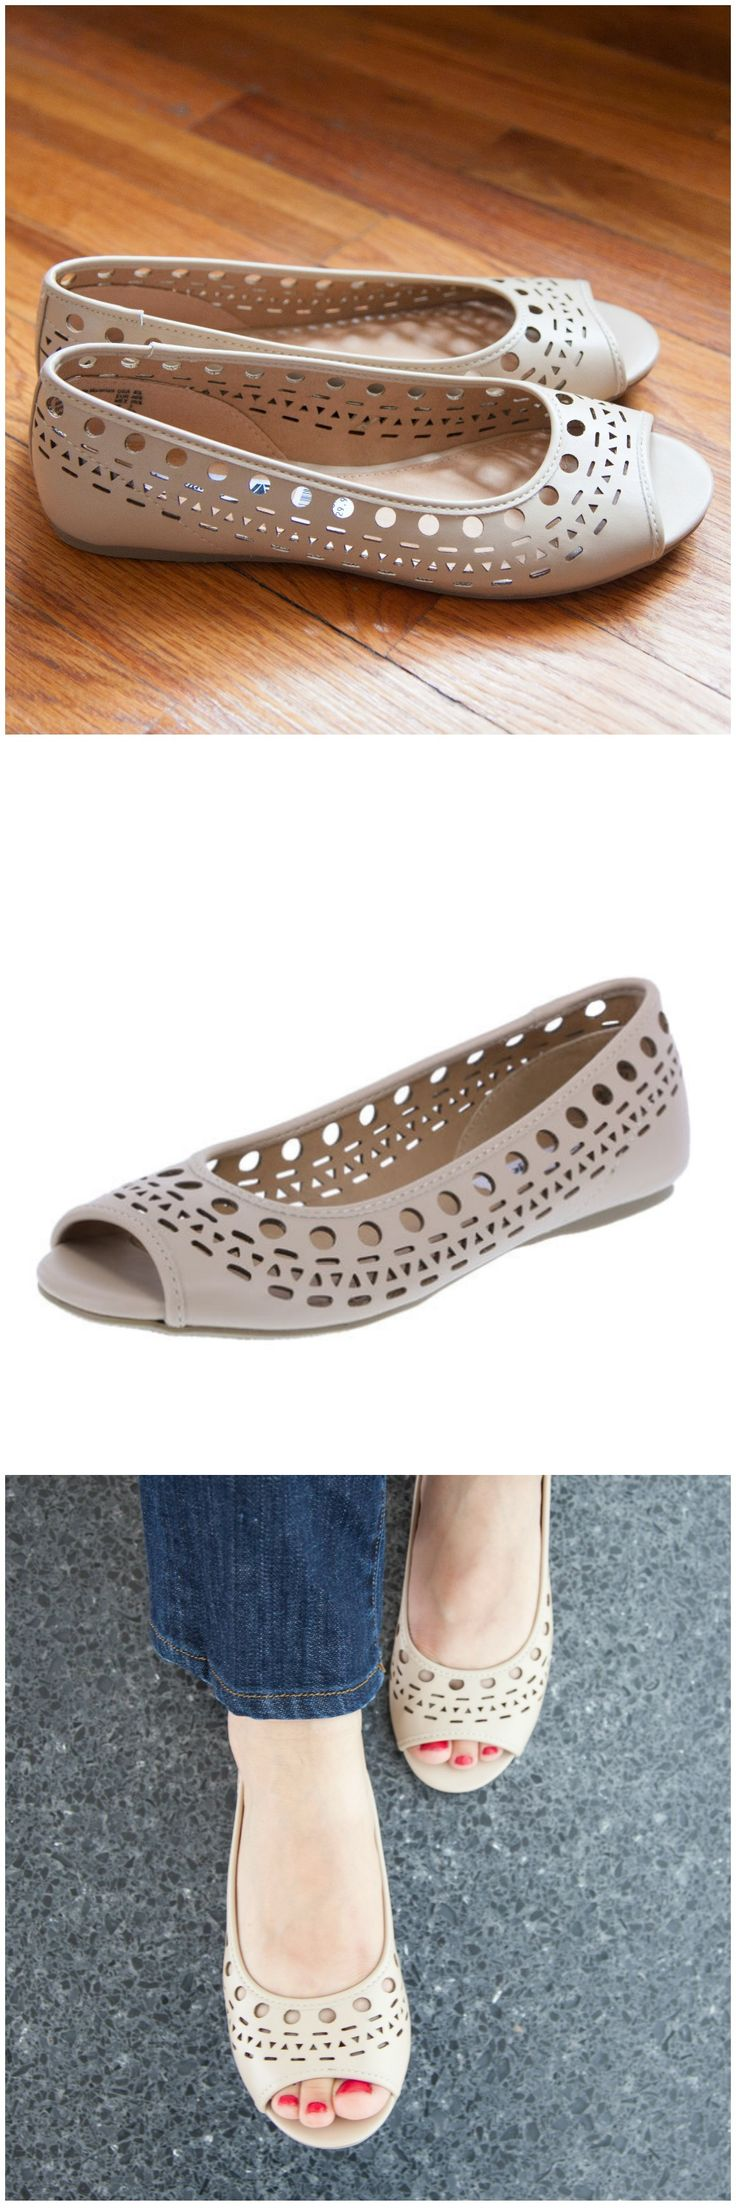 Pair the Caprice peep toe flat with anything for trendy summer style!